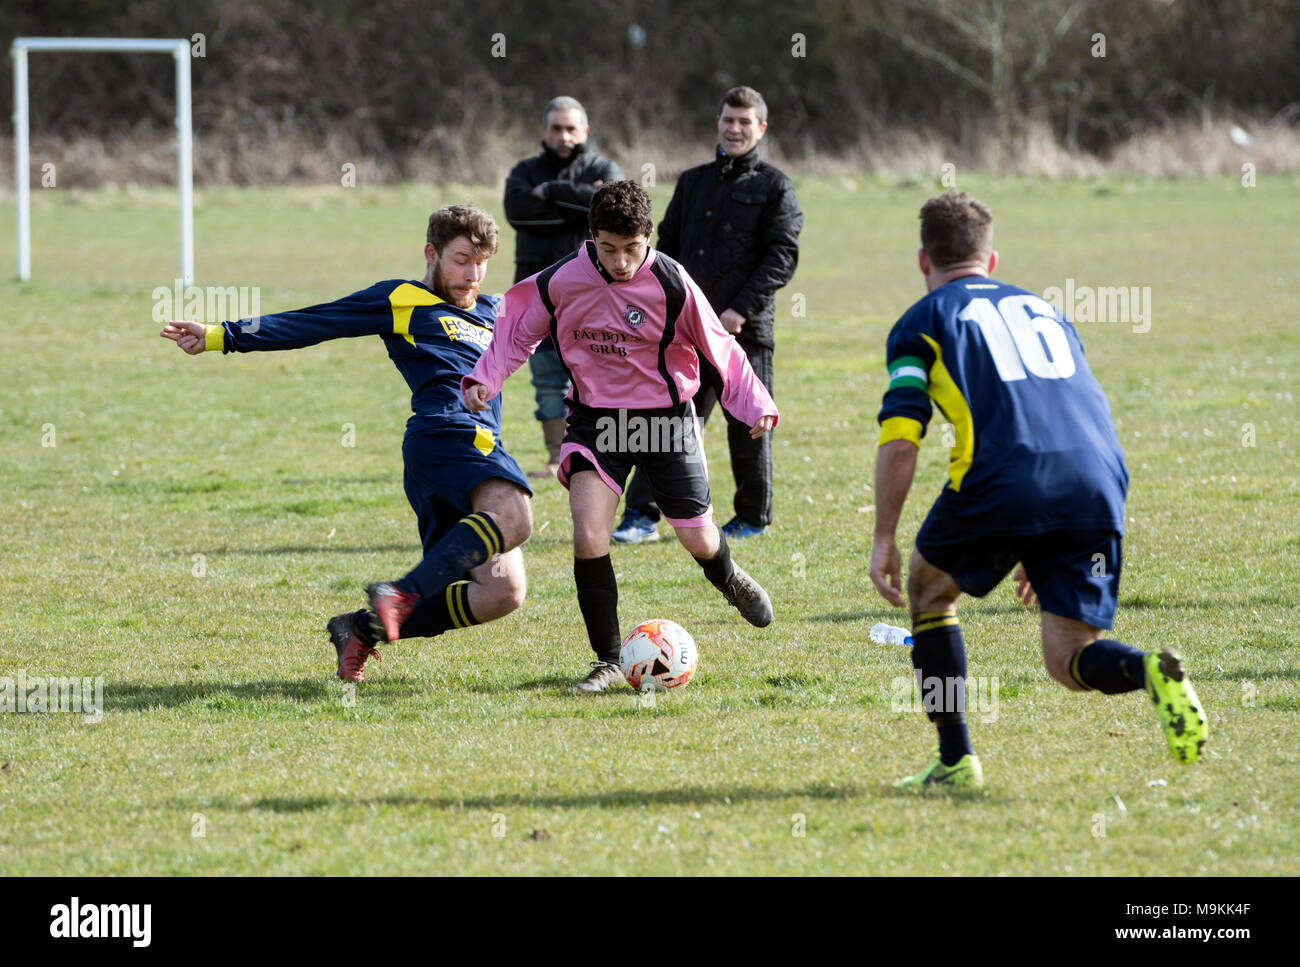 Sunday League football, Leamington Spa, Warwickshire, England, UK - Stock Image